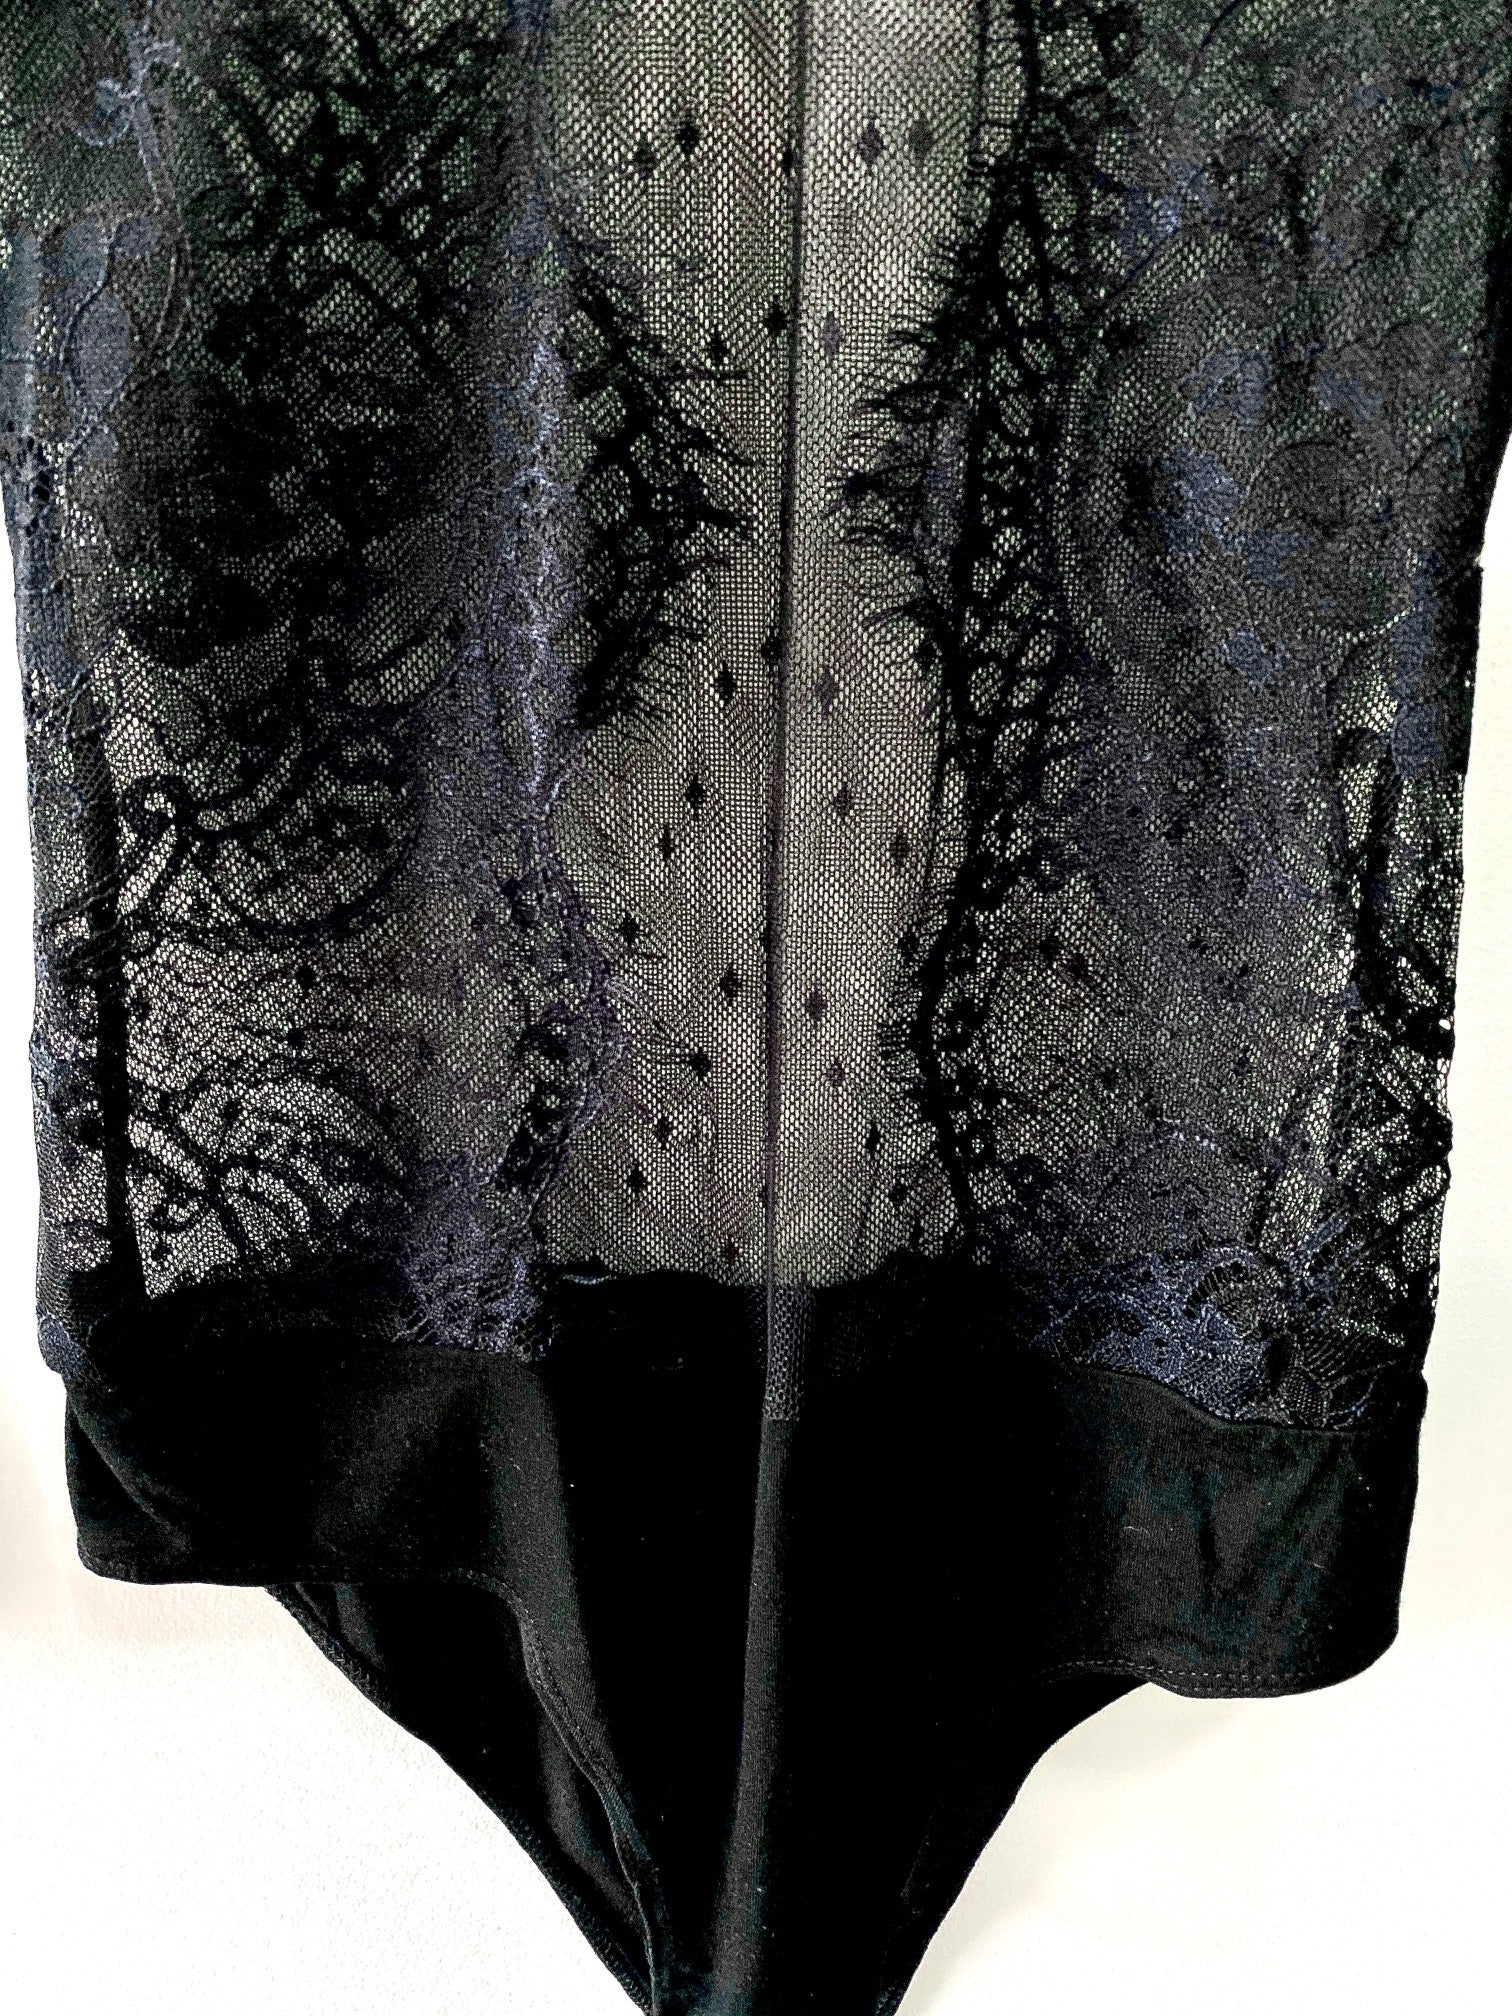 snap closure at crotch of black lace body suit